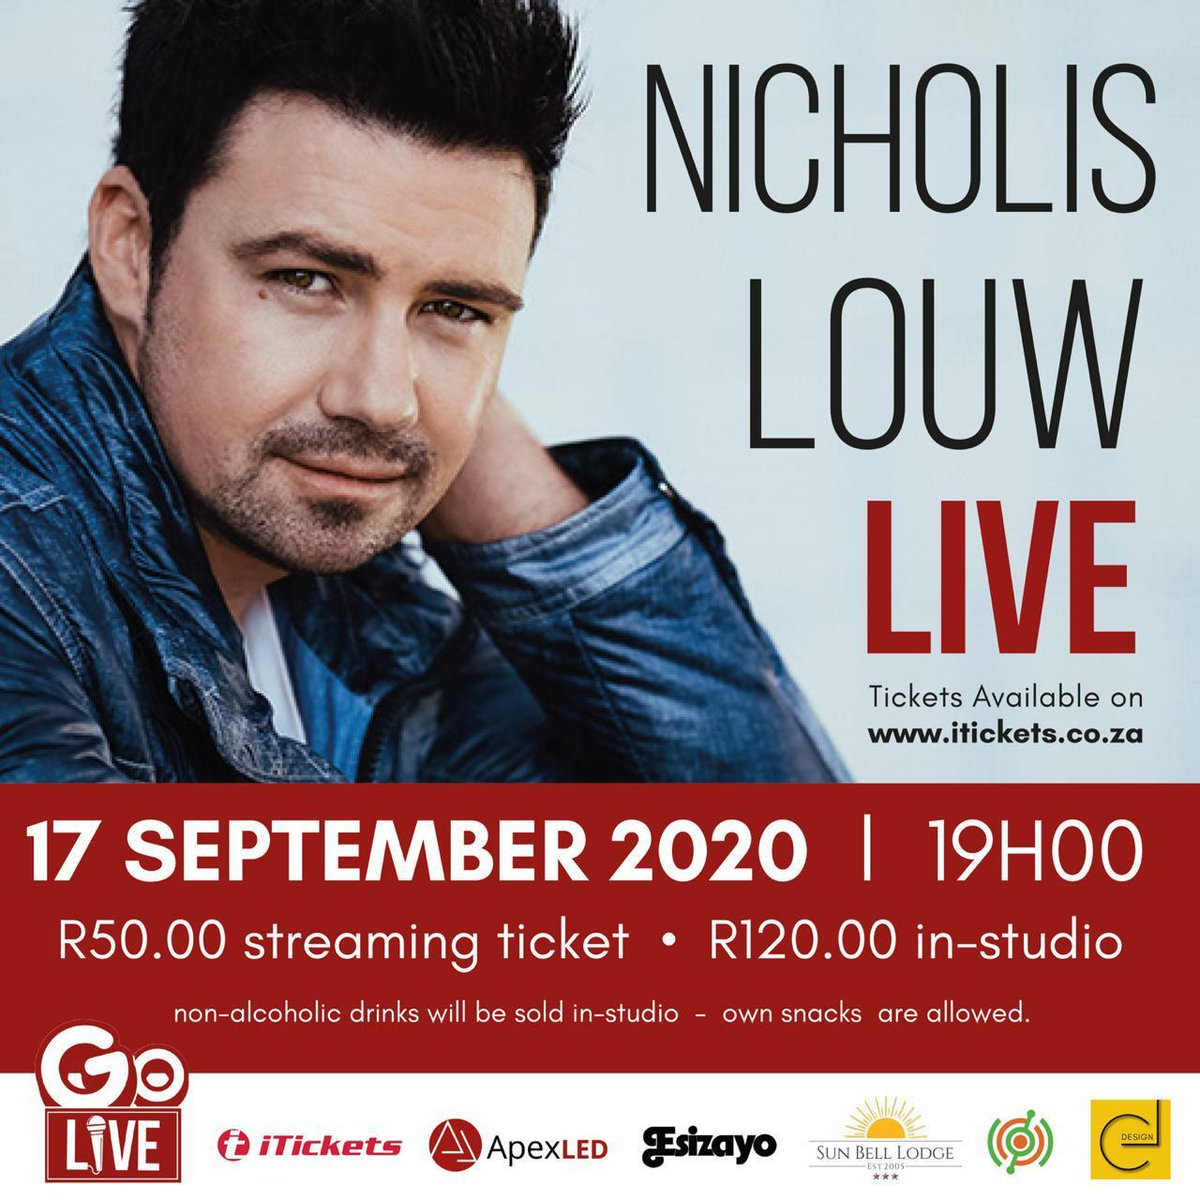 #TeamBlixem streamed two great shows for Go Live Concerts!  Check it out, you can still buy tickets and view online! @iTicketsSA https://t.co/dm8rmYxvbN